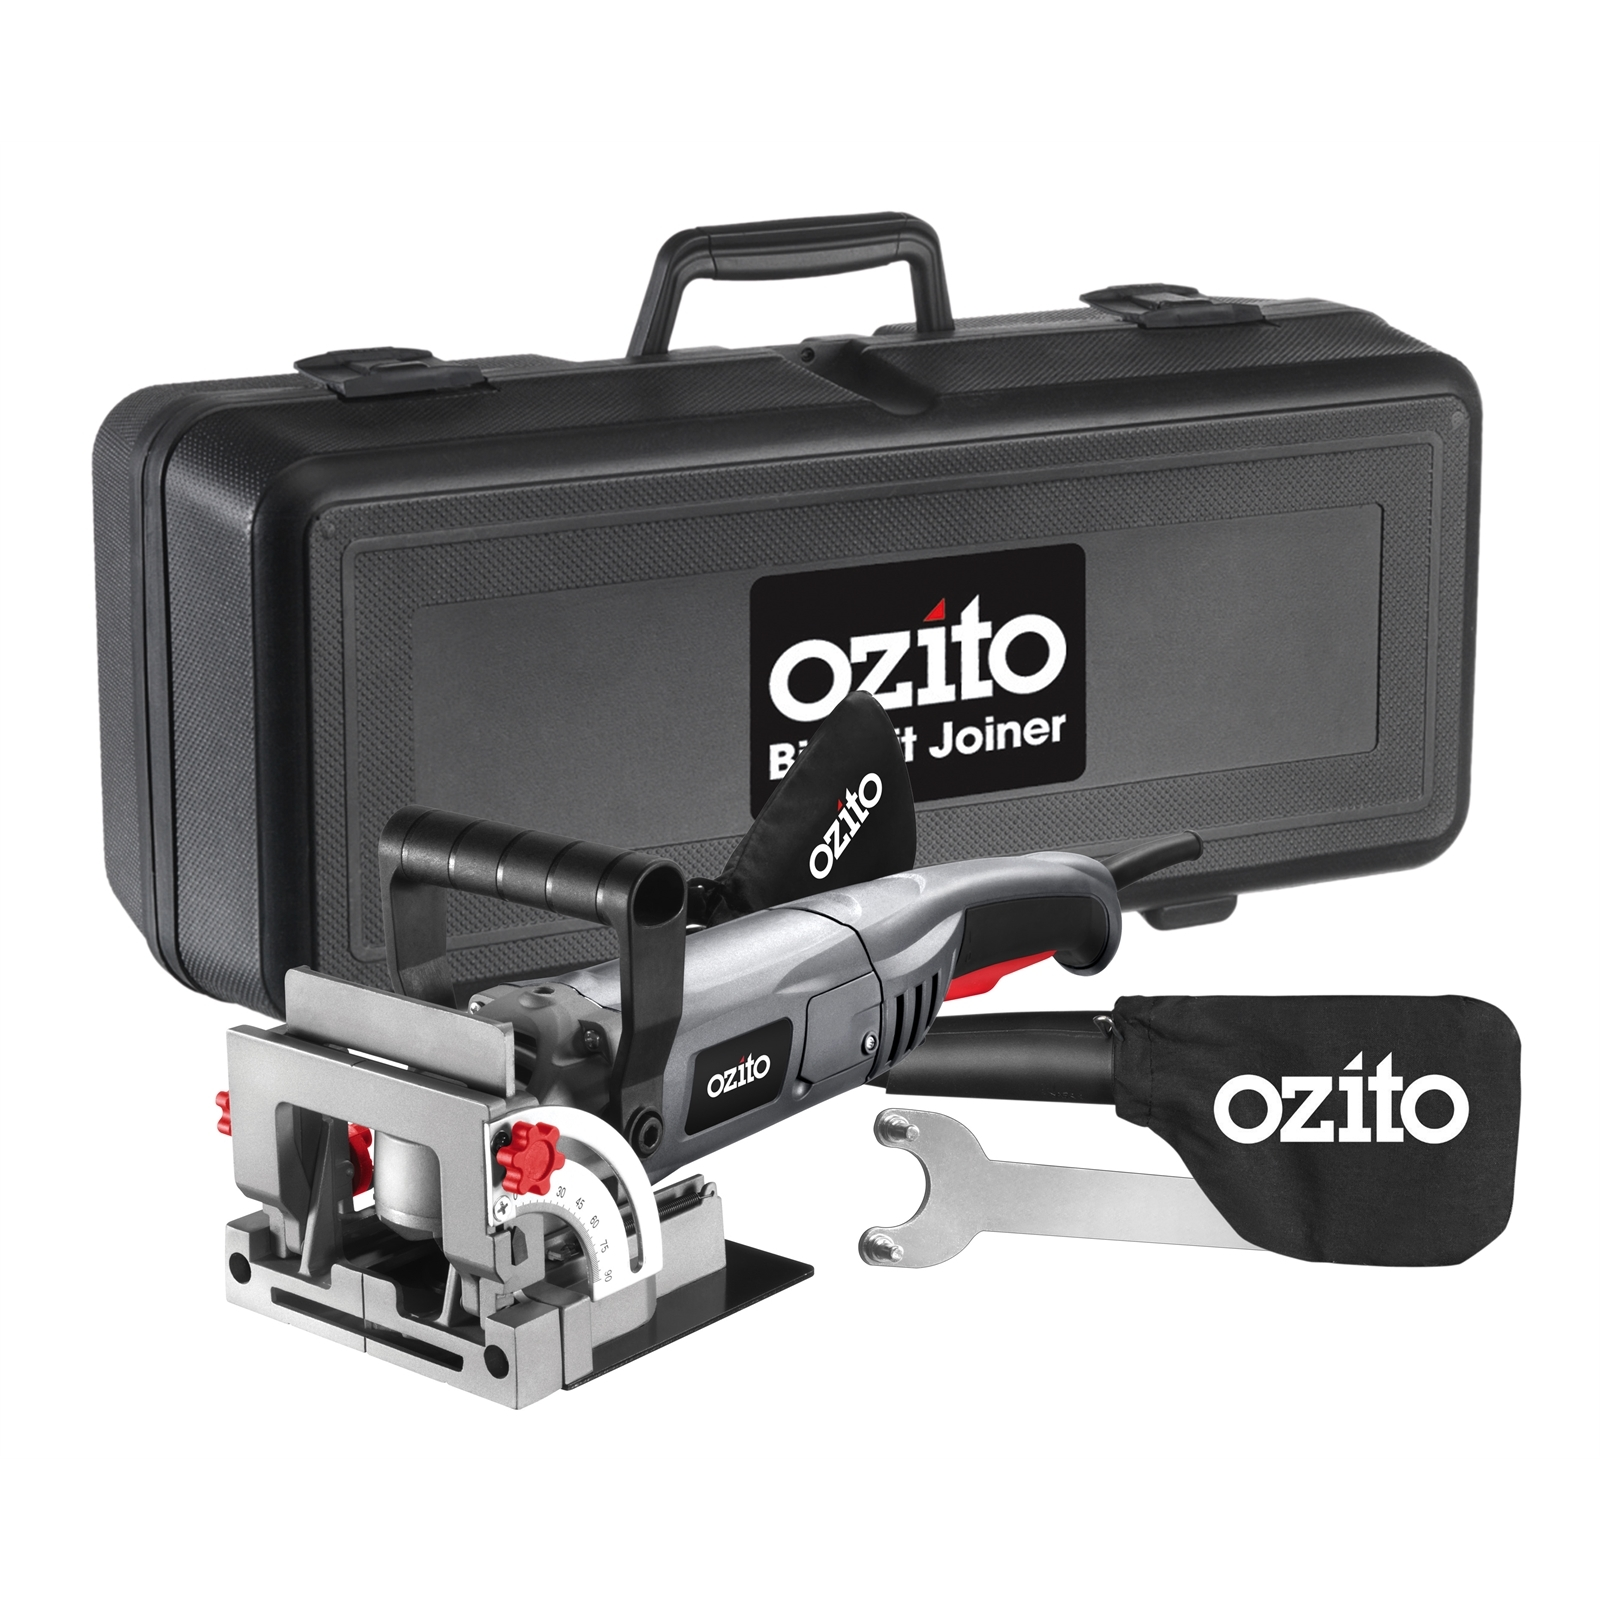 Ozito 1010W Biscuit Joiner